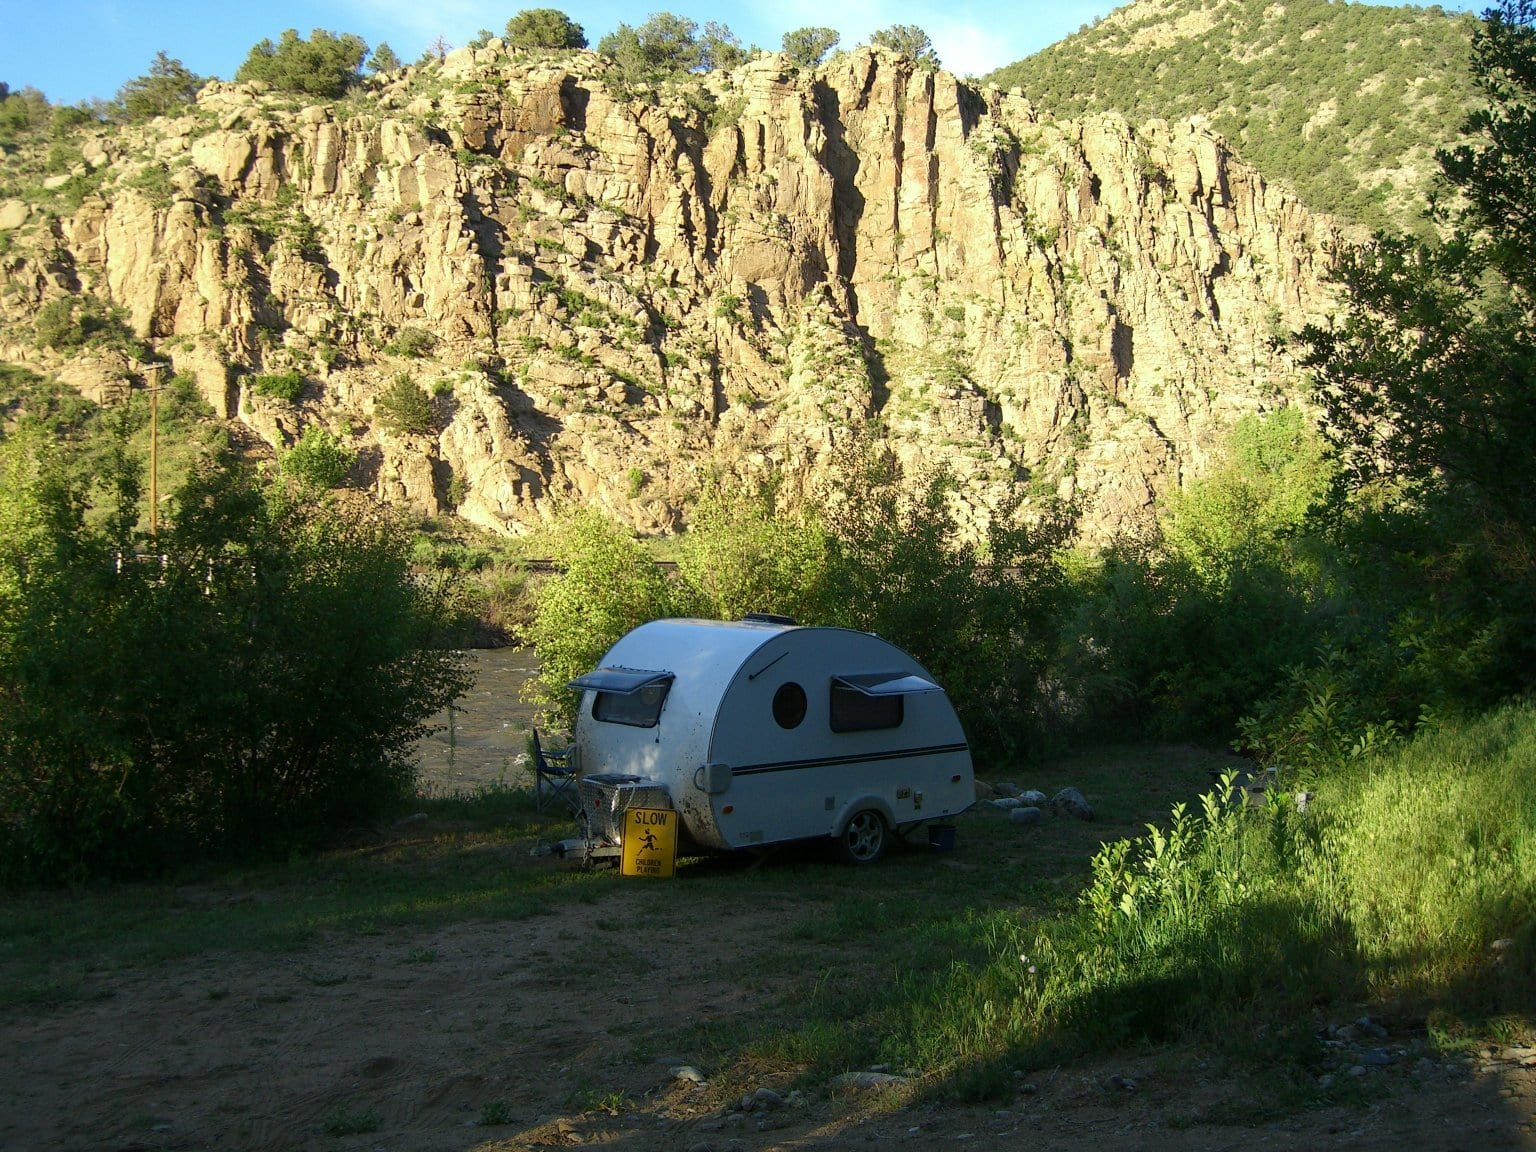 Camping Cotopaxi CO On Banks of Arkansas River